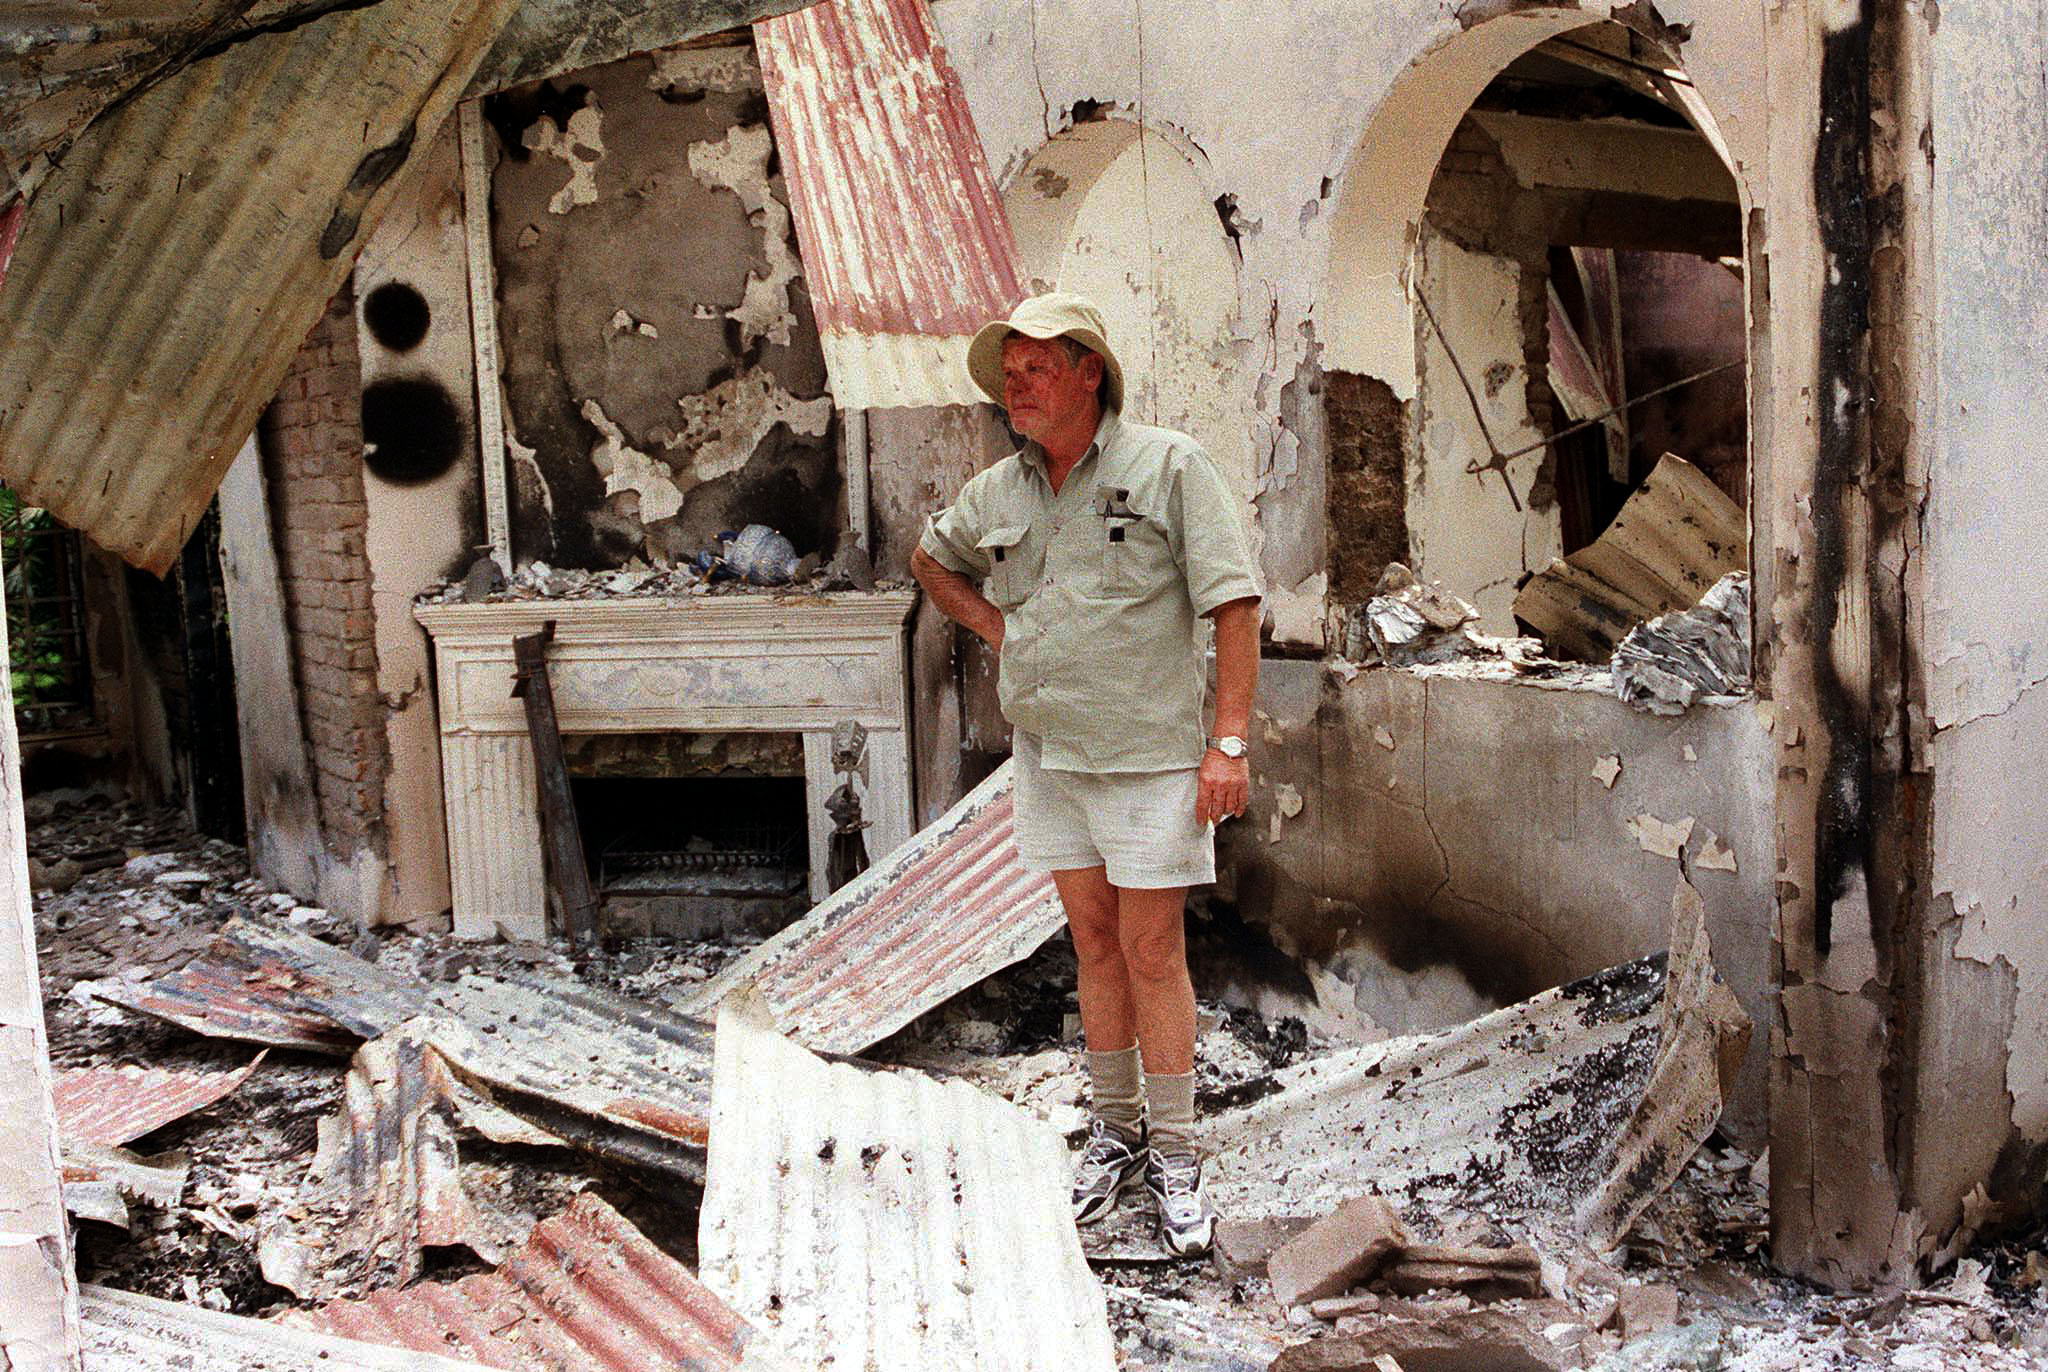 In this file photo from 2002, Dup Muller, 59, a commercial farmer in Headlands, 110 kilometers, (70 miles) East of Harare, stands in the burned out ruins of his farm house, which  was attacked by war veterans enforcing a government order for whites to leave their farms.